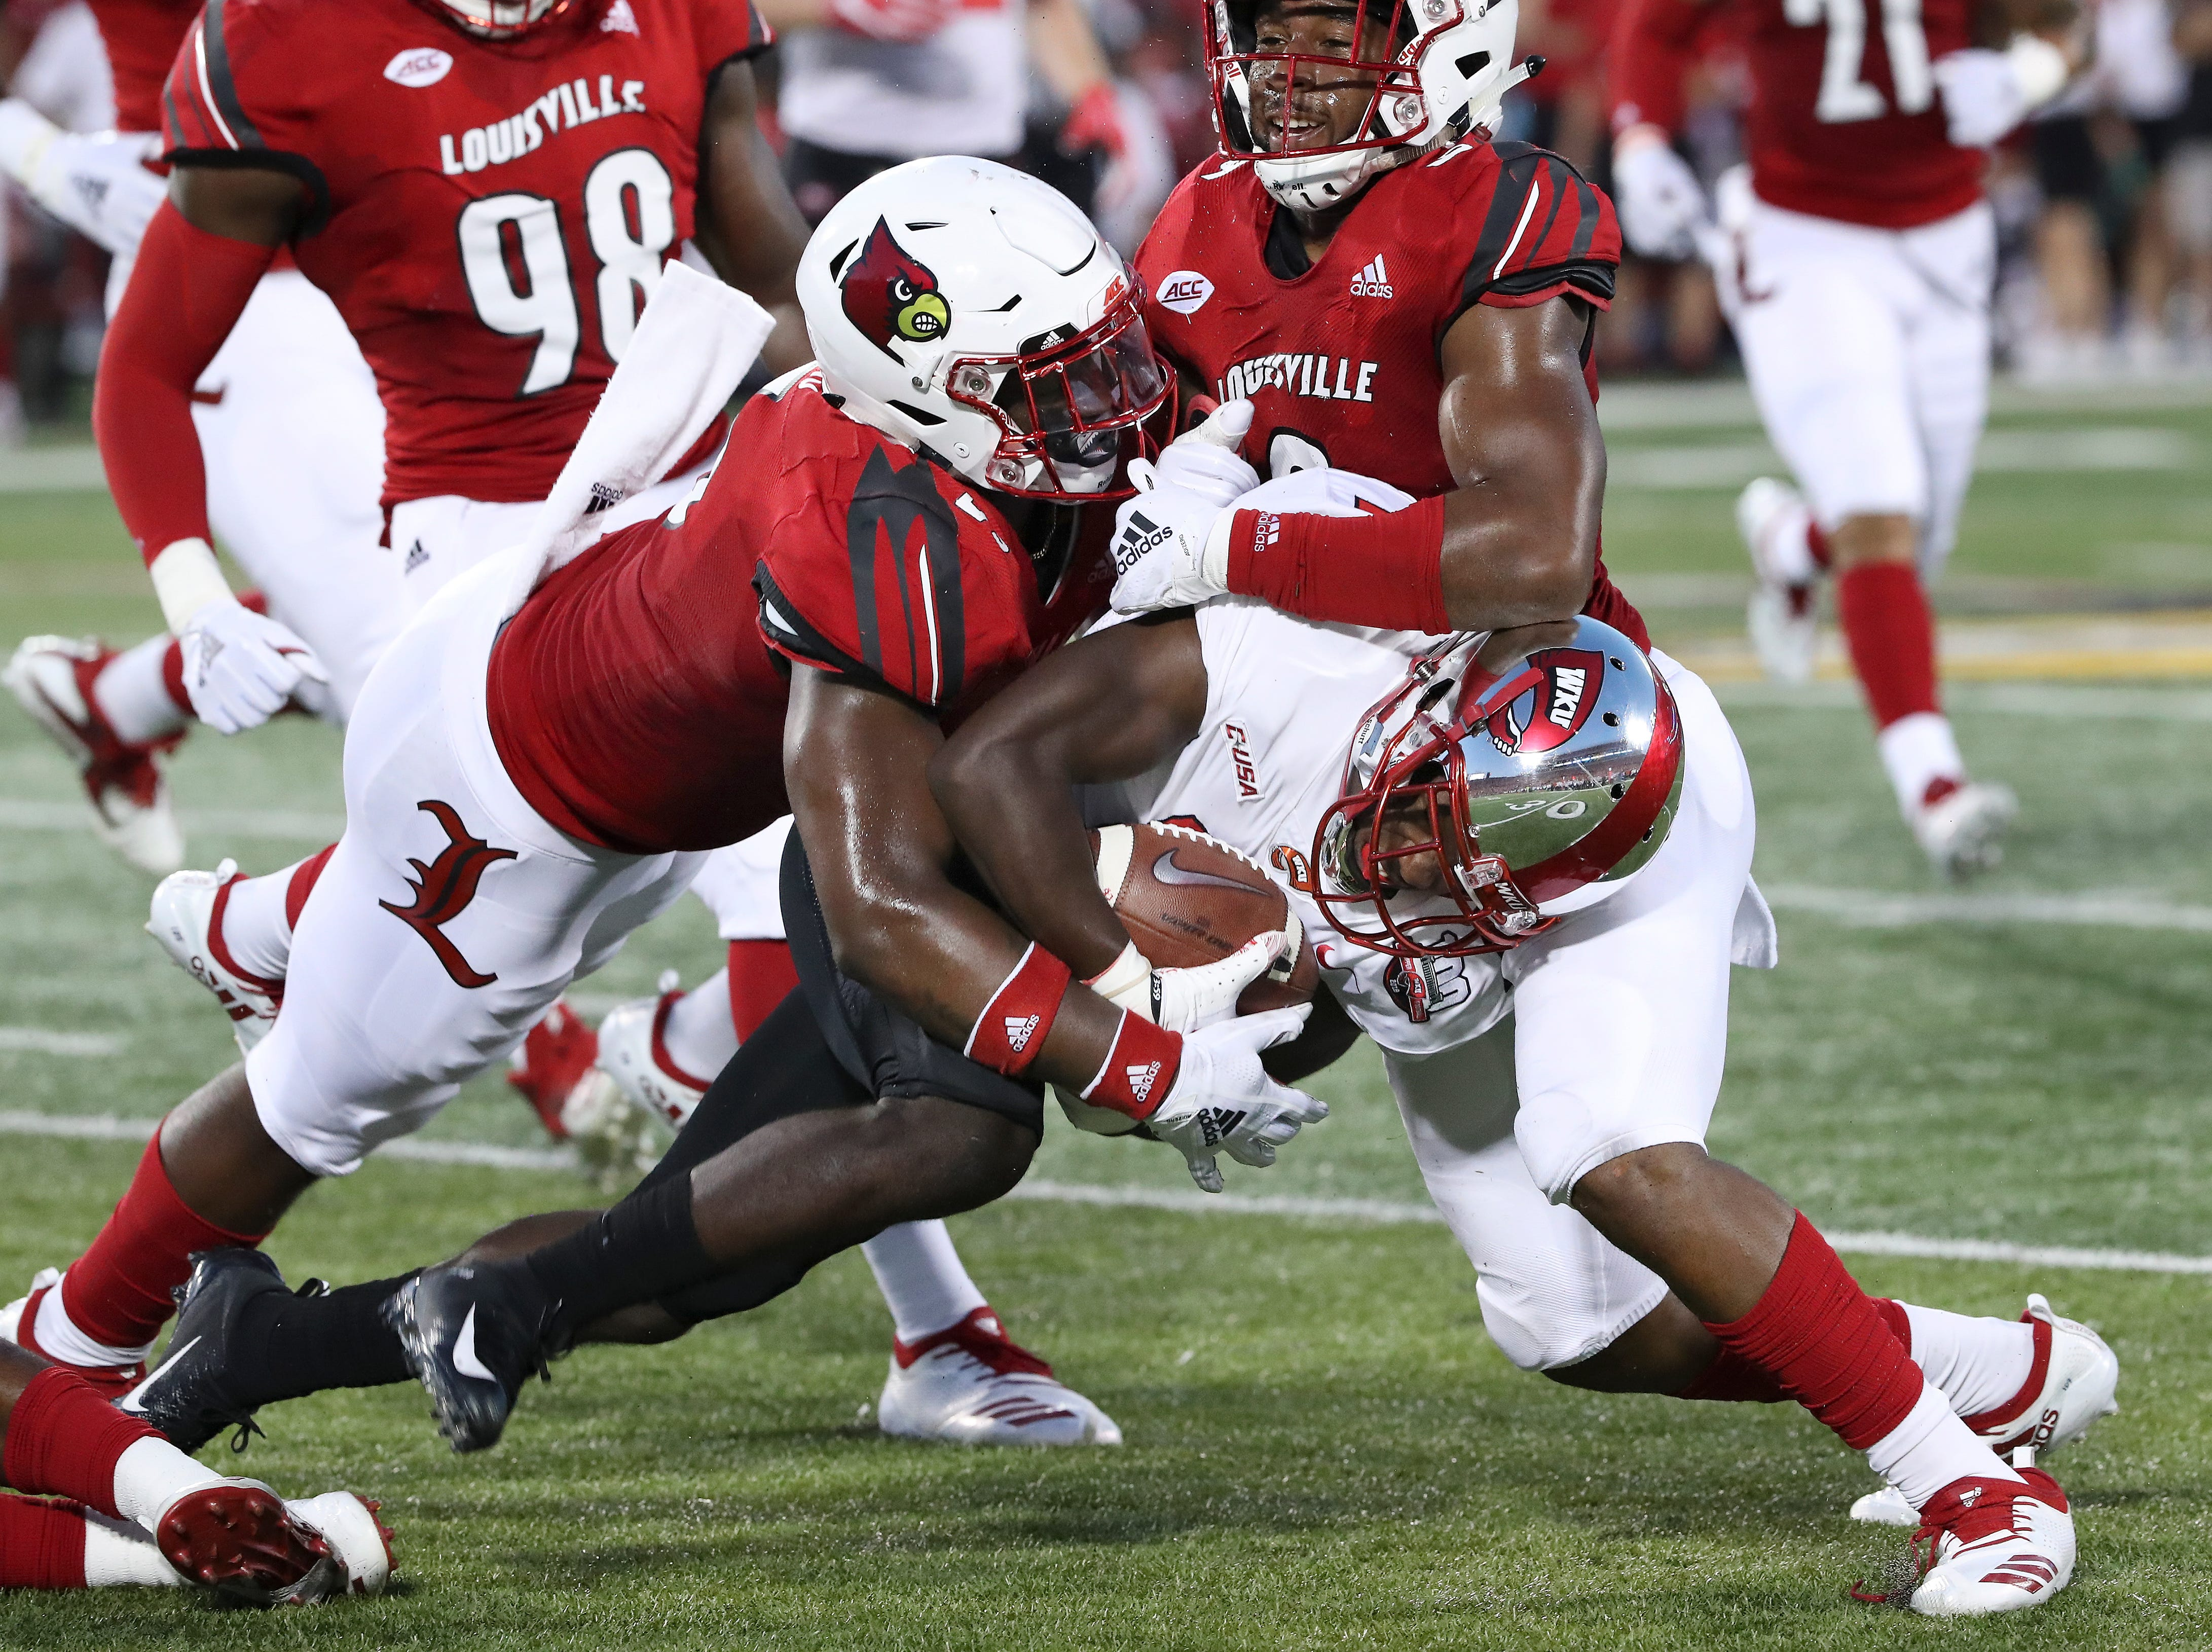 WKU's Garland LaFrance (14) tried squeeze out a few extra yards against Louisville's Robert Hicks (5) and C.J. Avery (9) during their game at Cardinal Stadium.